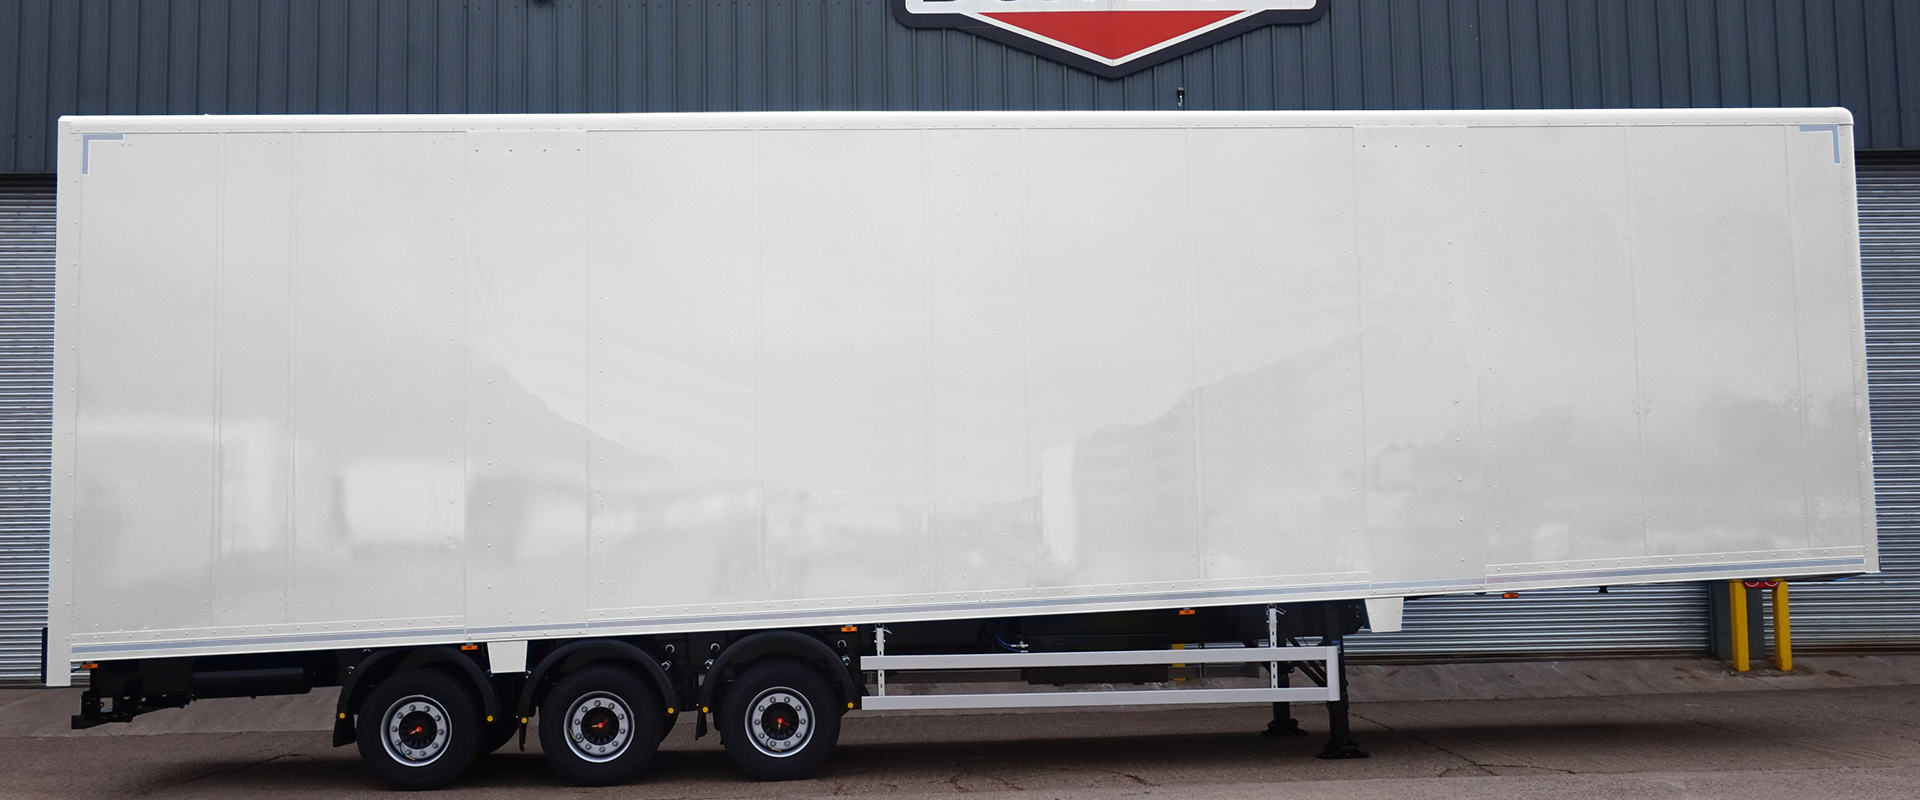 Wedge Double Deck Trailer